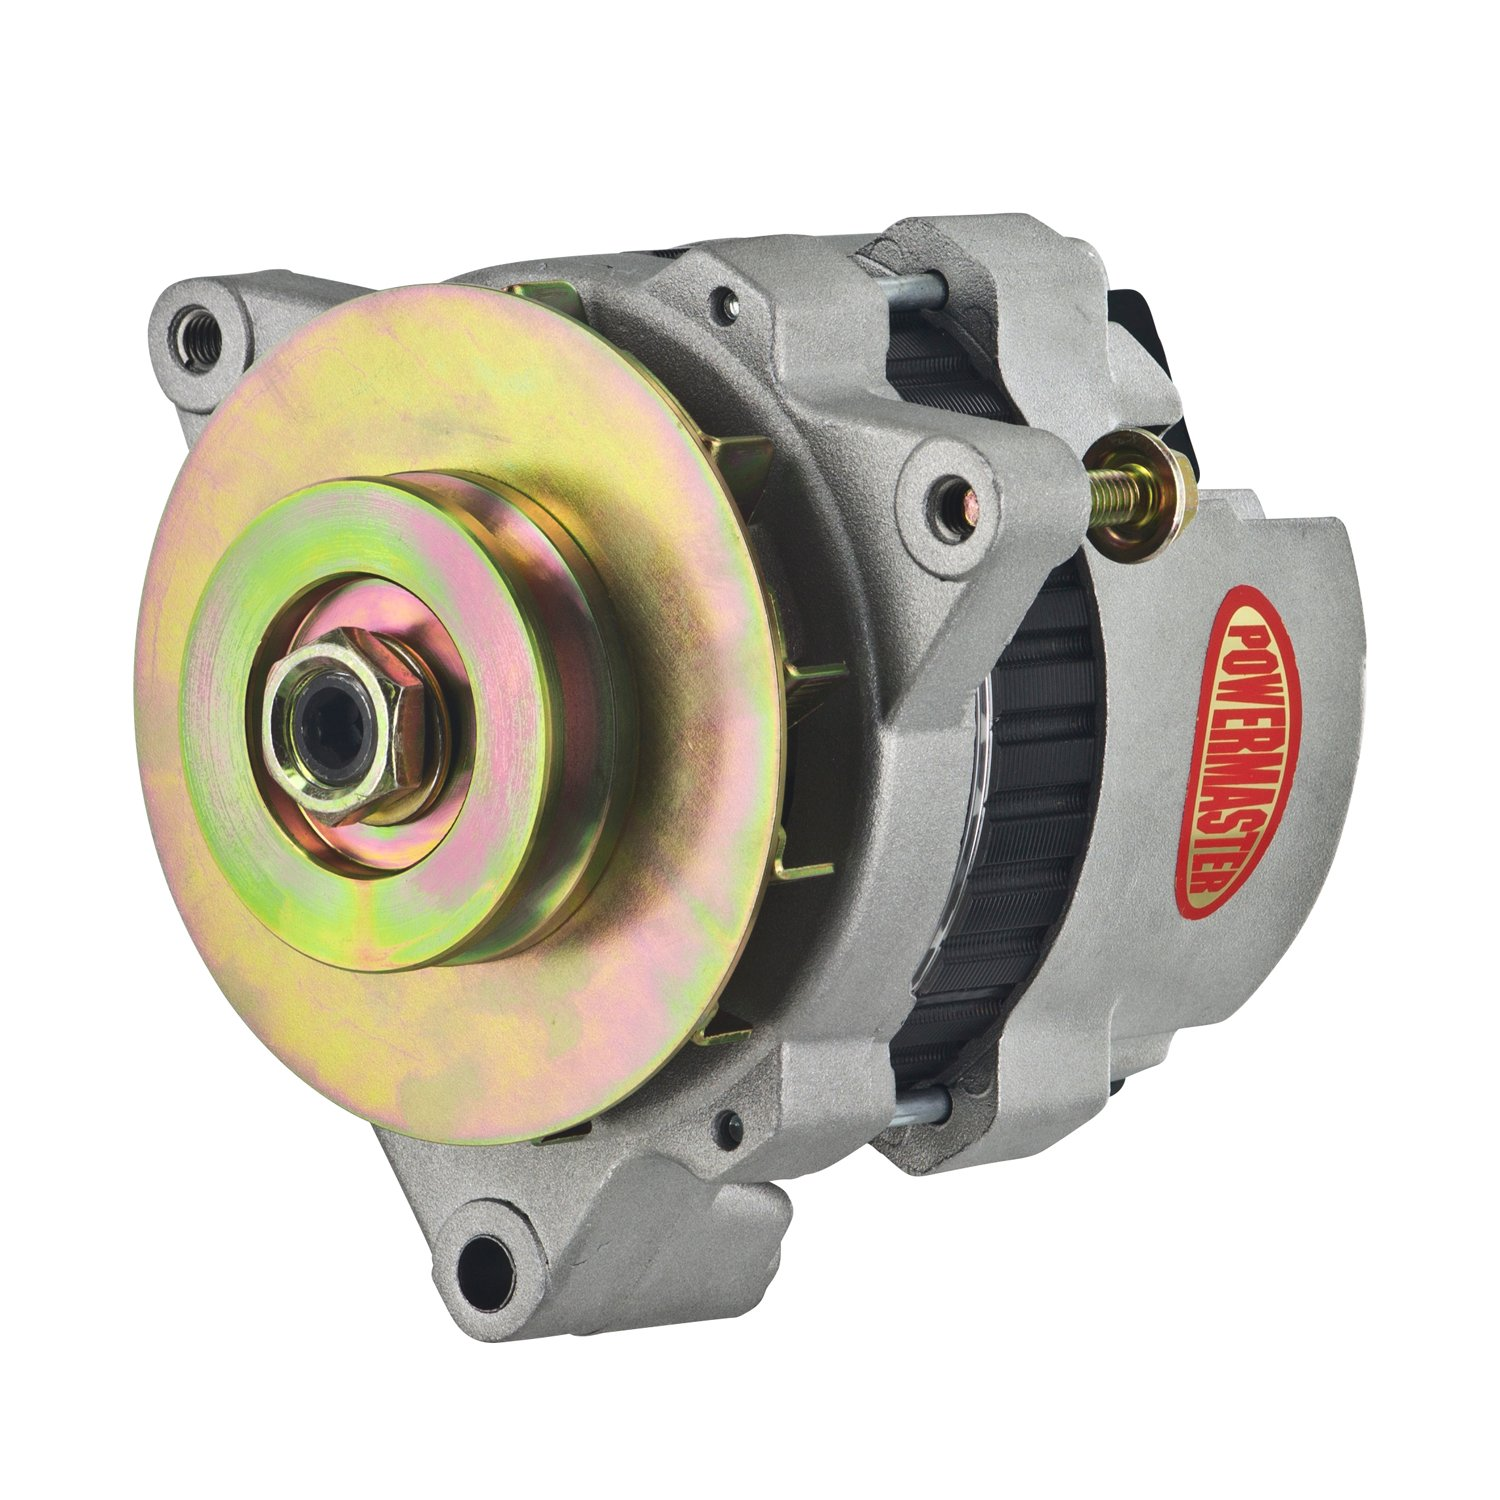 Powermaster 7478-104 - GM 5x5 Compact Race Alternators